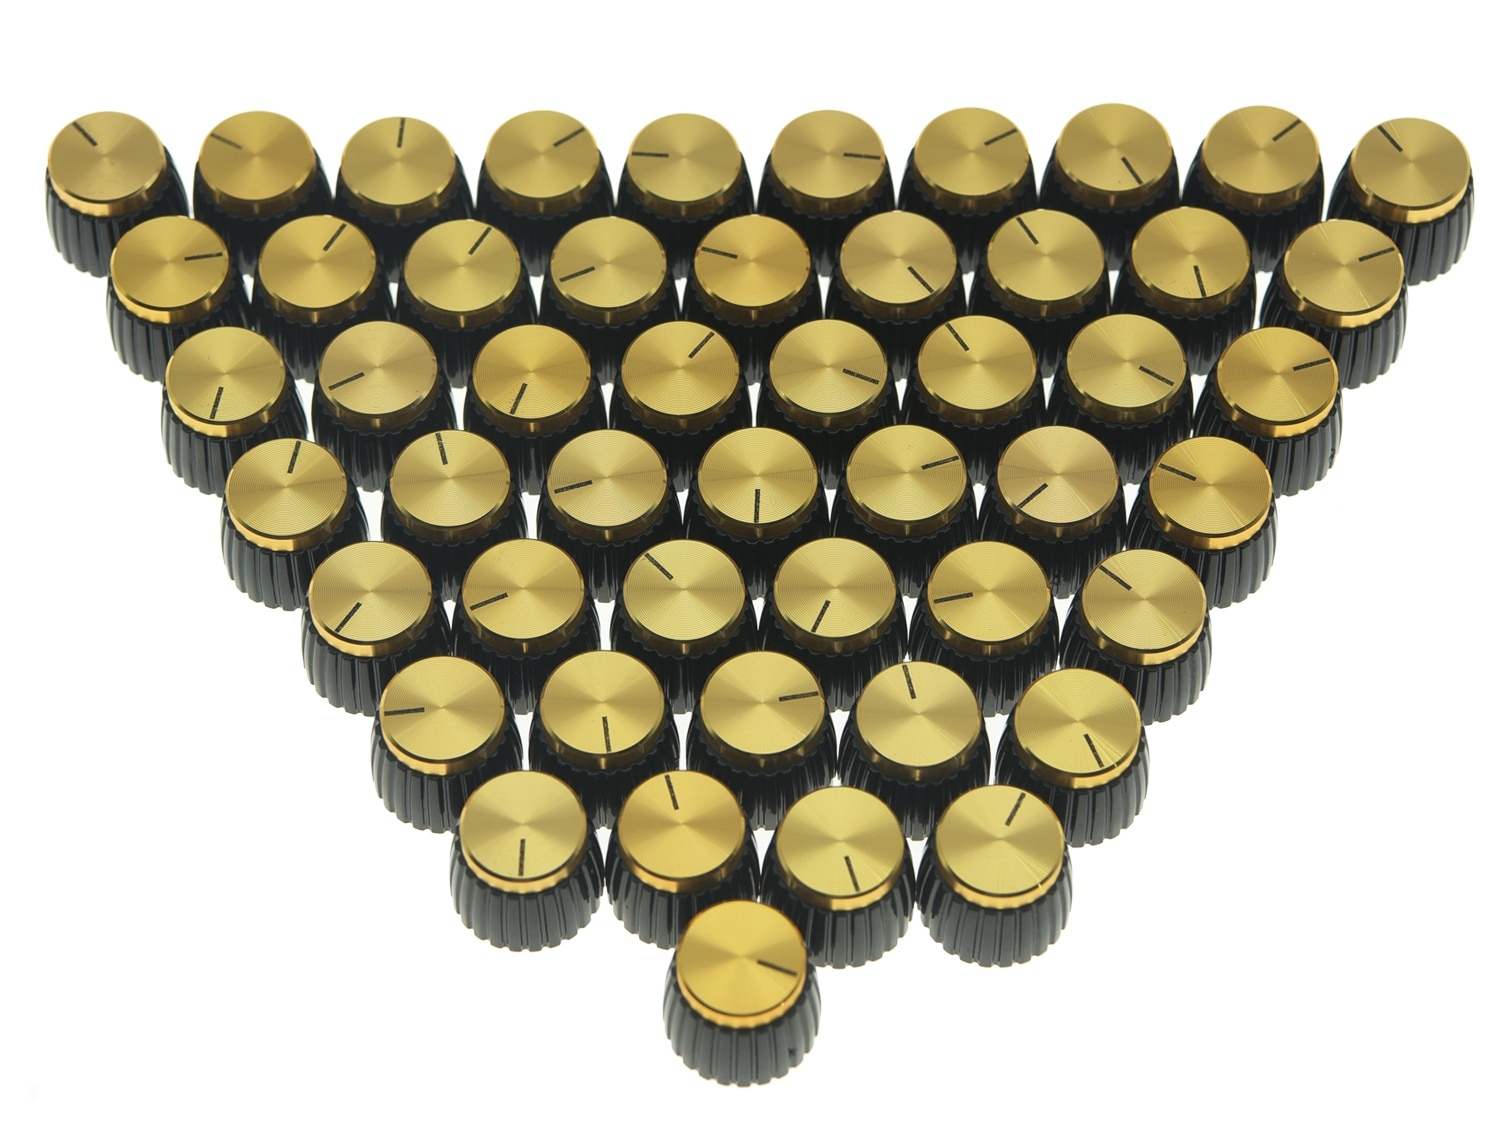 50x Guitar AMP Amplifier Knobs Black w/ Gold Cap Push on Knob fits Marshall AMP enlarge